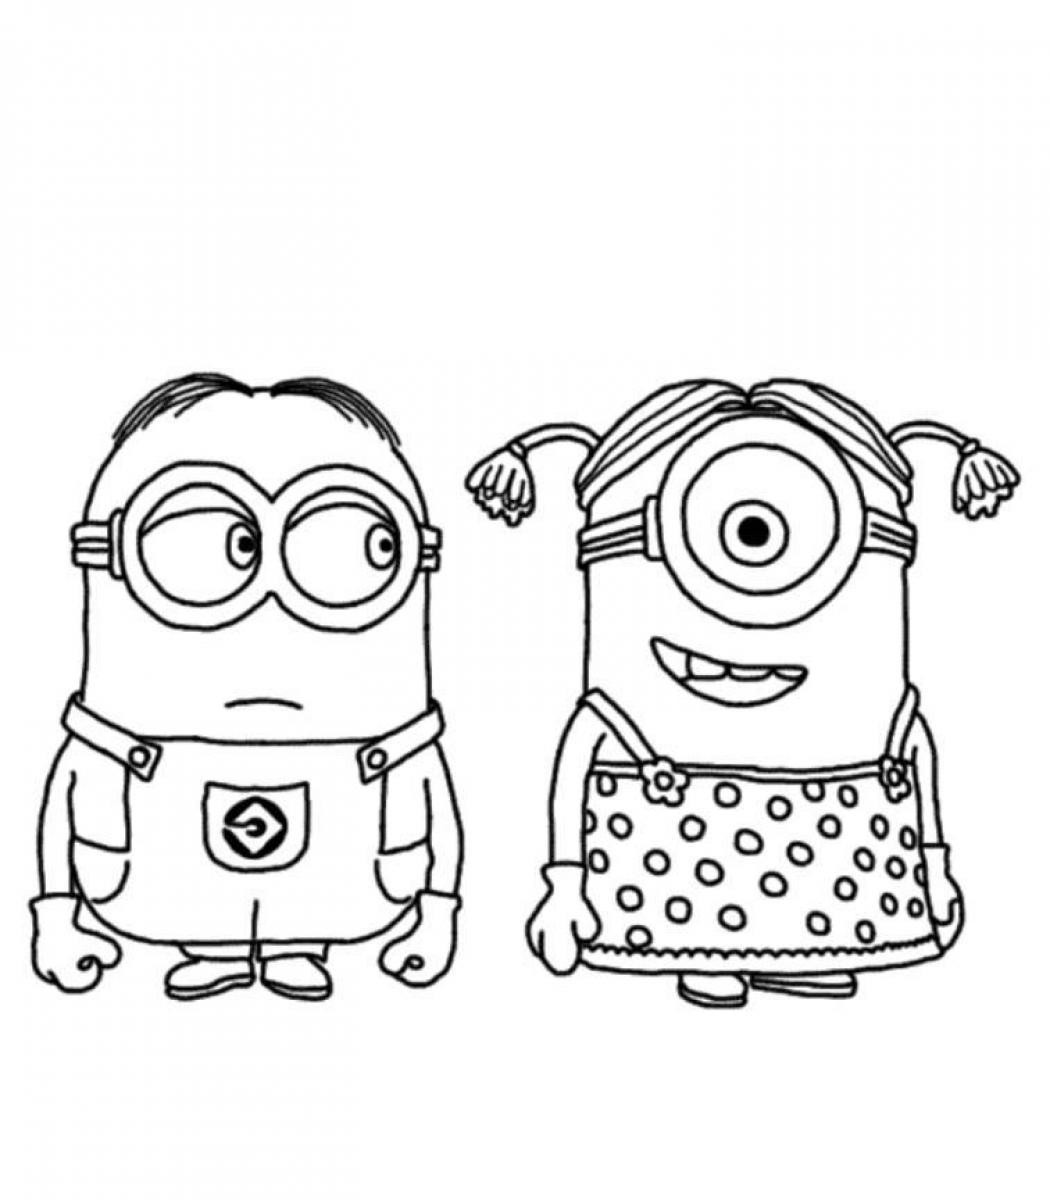 1050x1200 Free Coloring Pages For Girls Minion Costume Girl Baby Minions